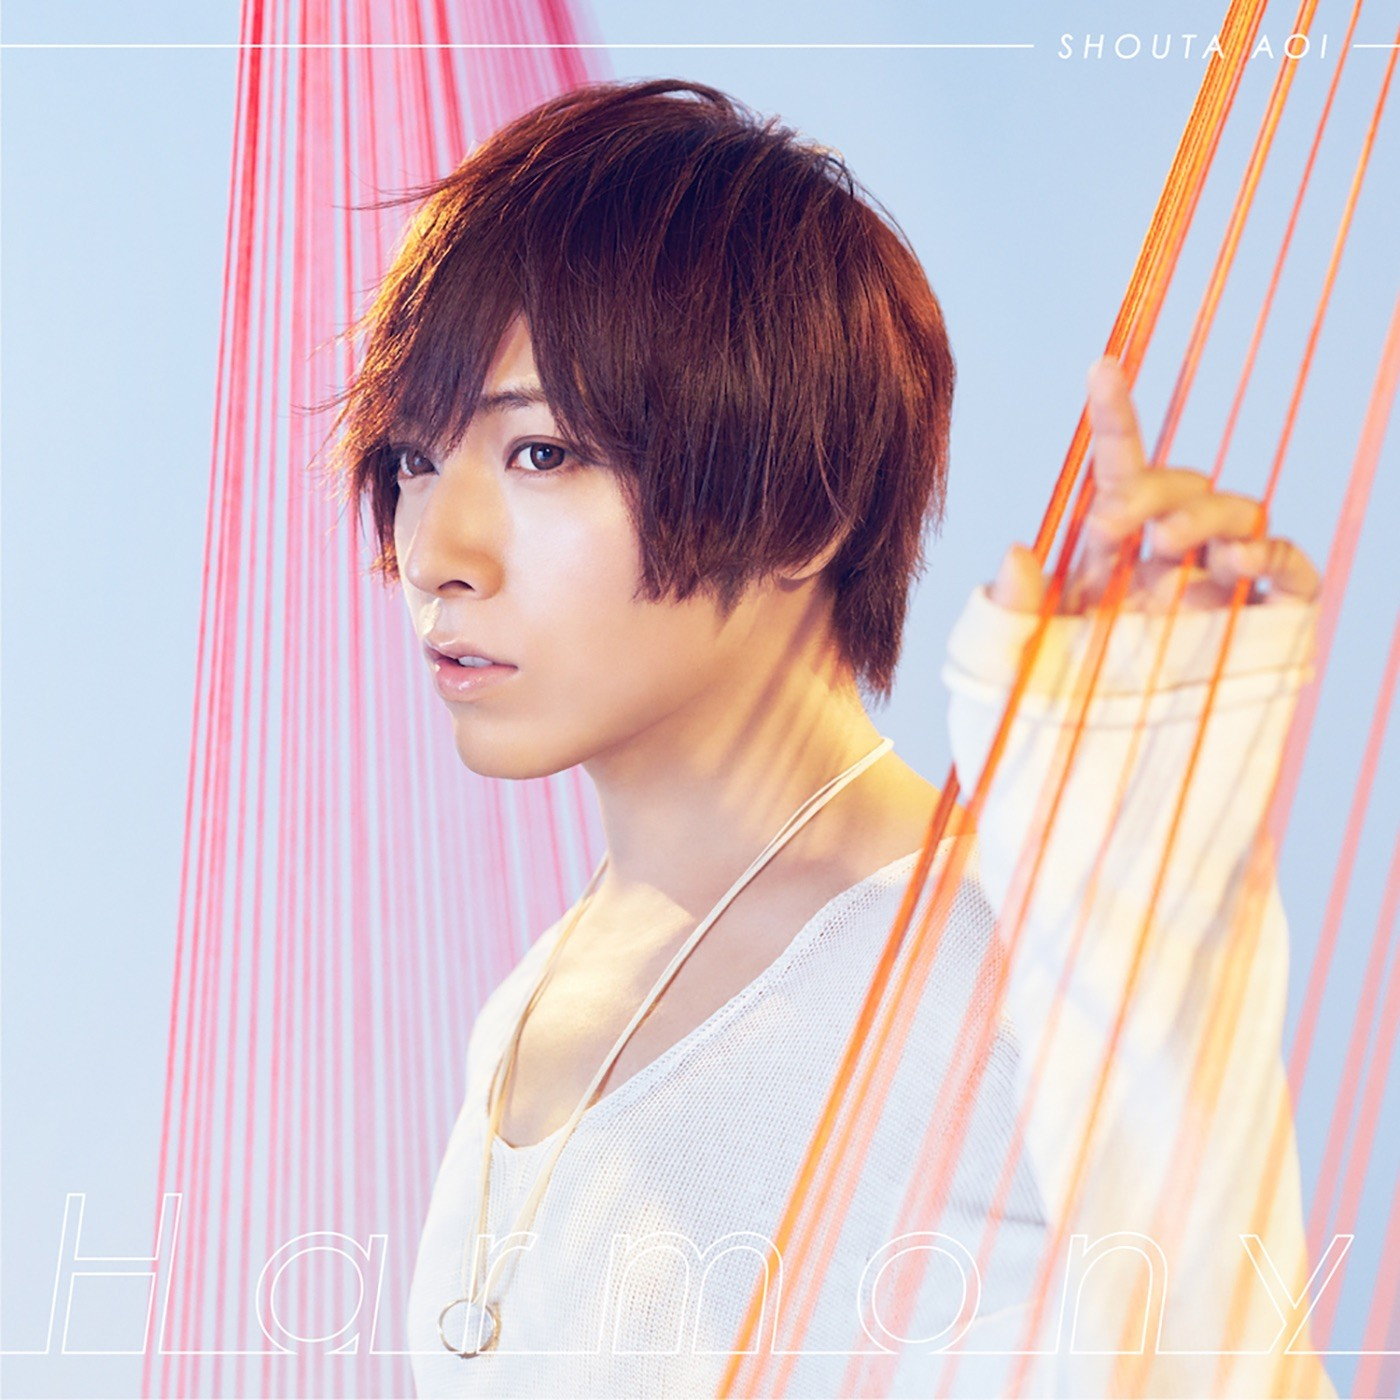 蒼井翔太 (Shouta Aoi) – Harmony [MP3 320 / CD] [2019.10.02]